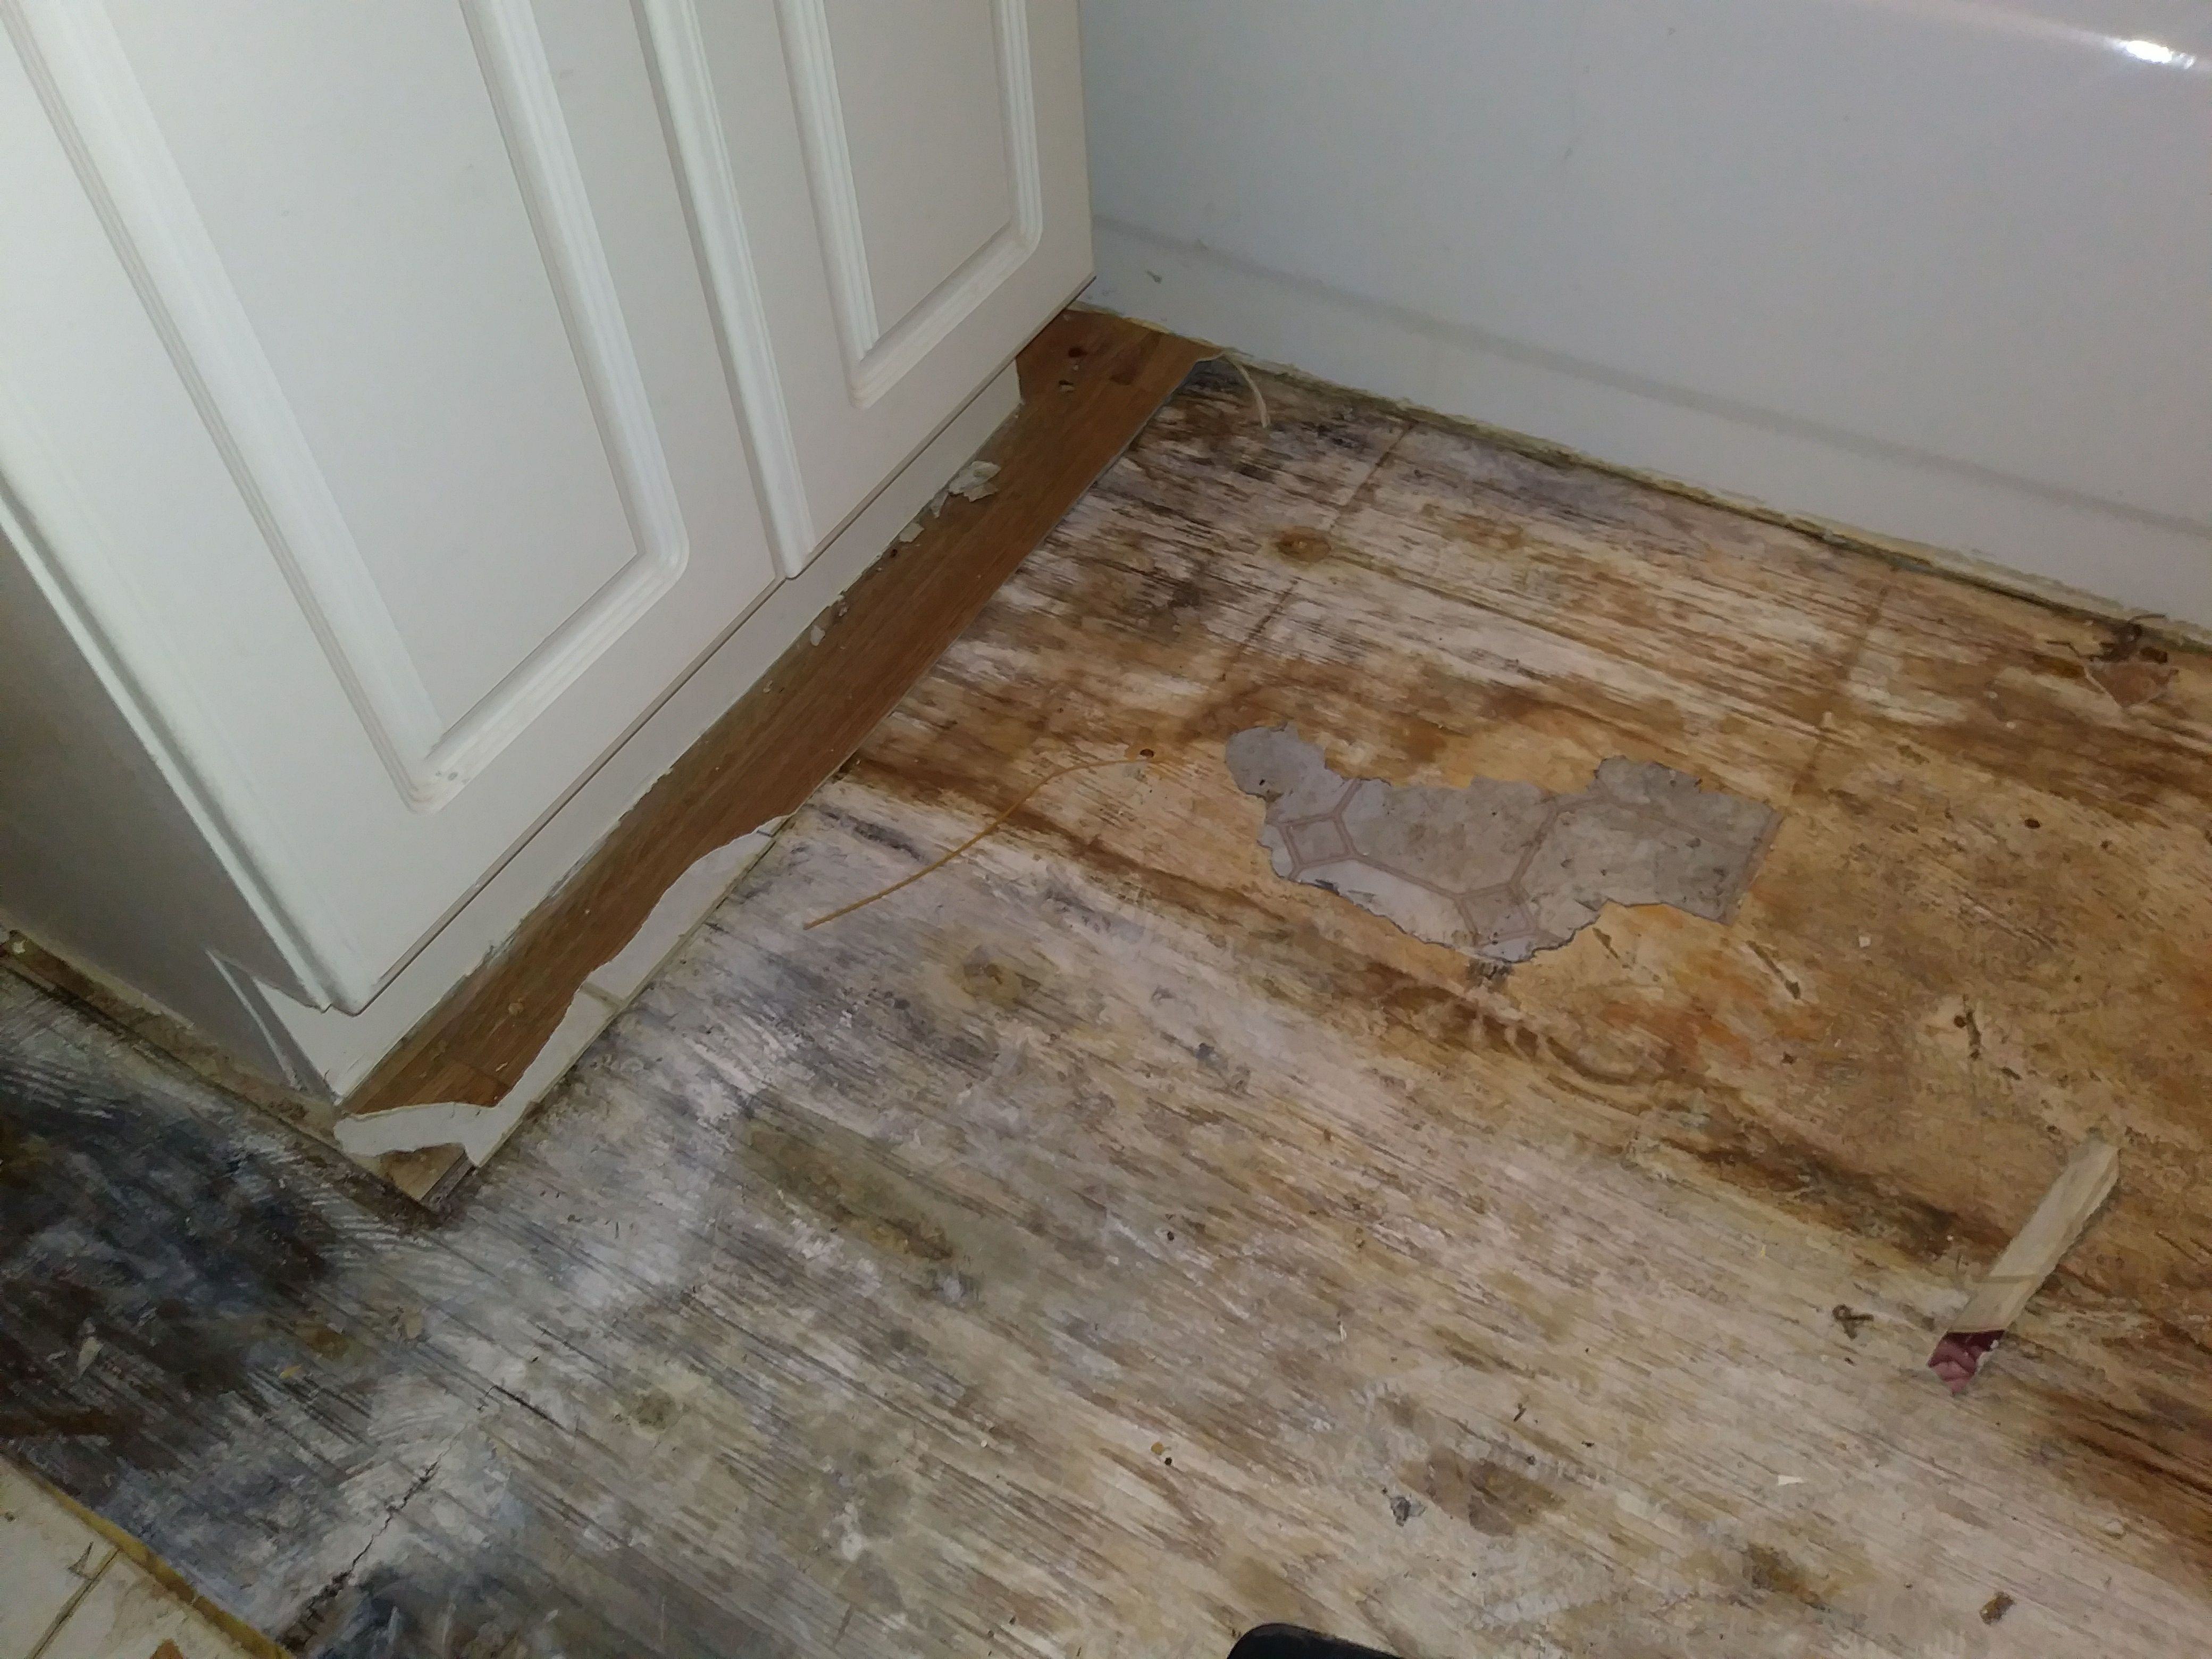 We installed ceramic tile in the bathroom and fixed the subfloor we offer flooring installations carpet cleaning janitorial cleaning services and water damage services dailygadgetfo Choice Image